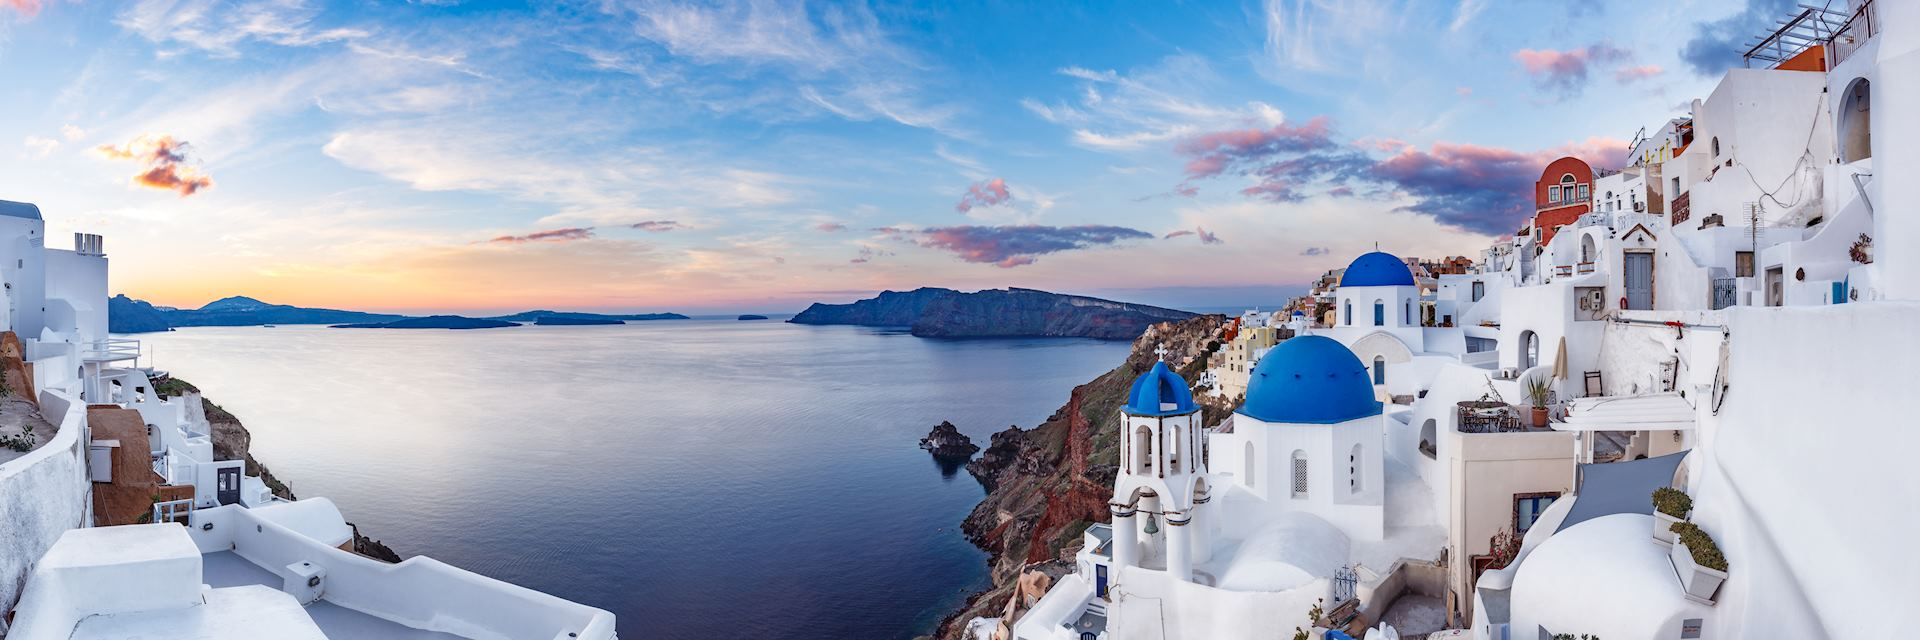 Santorini at sunrise